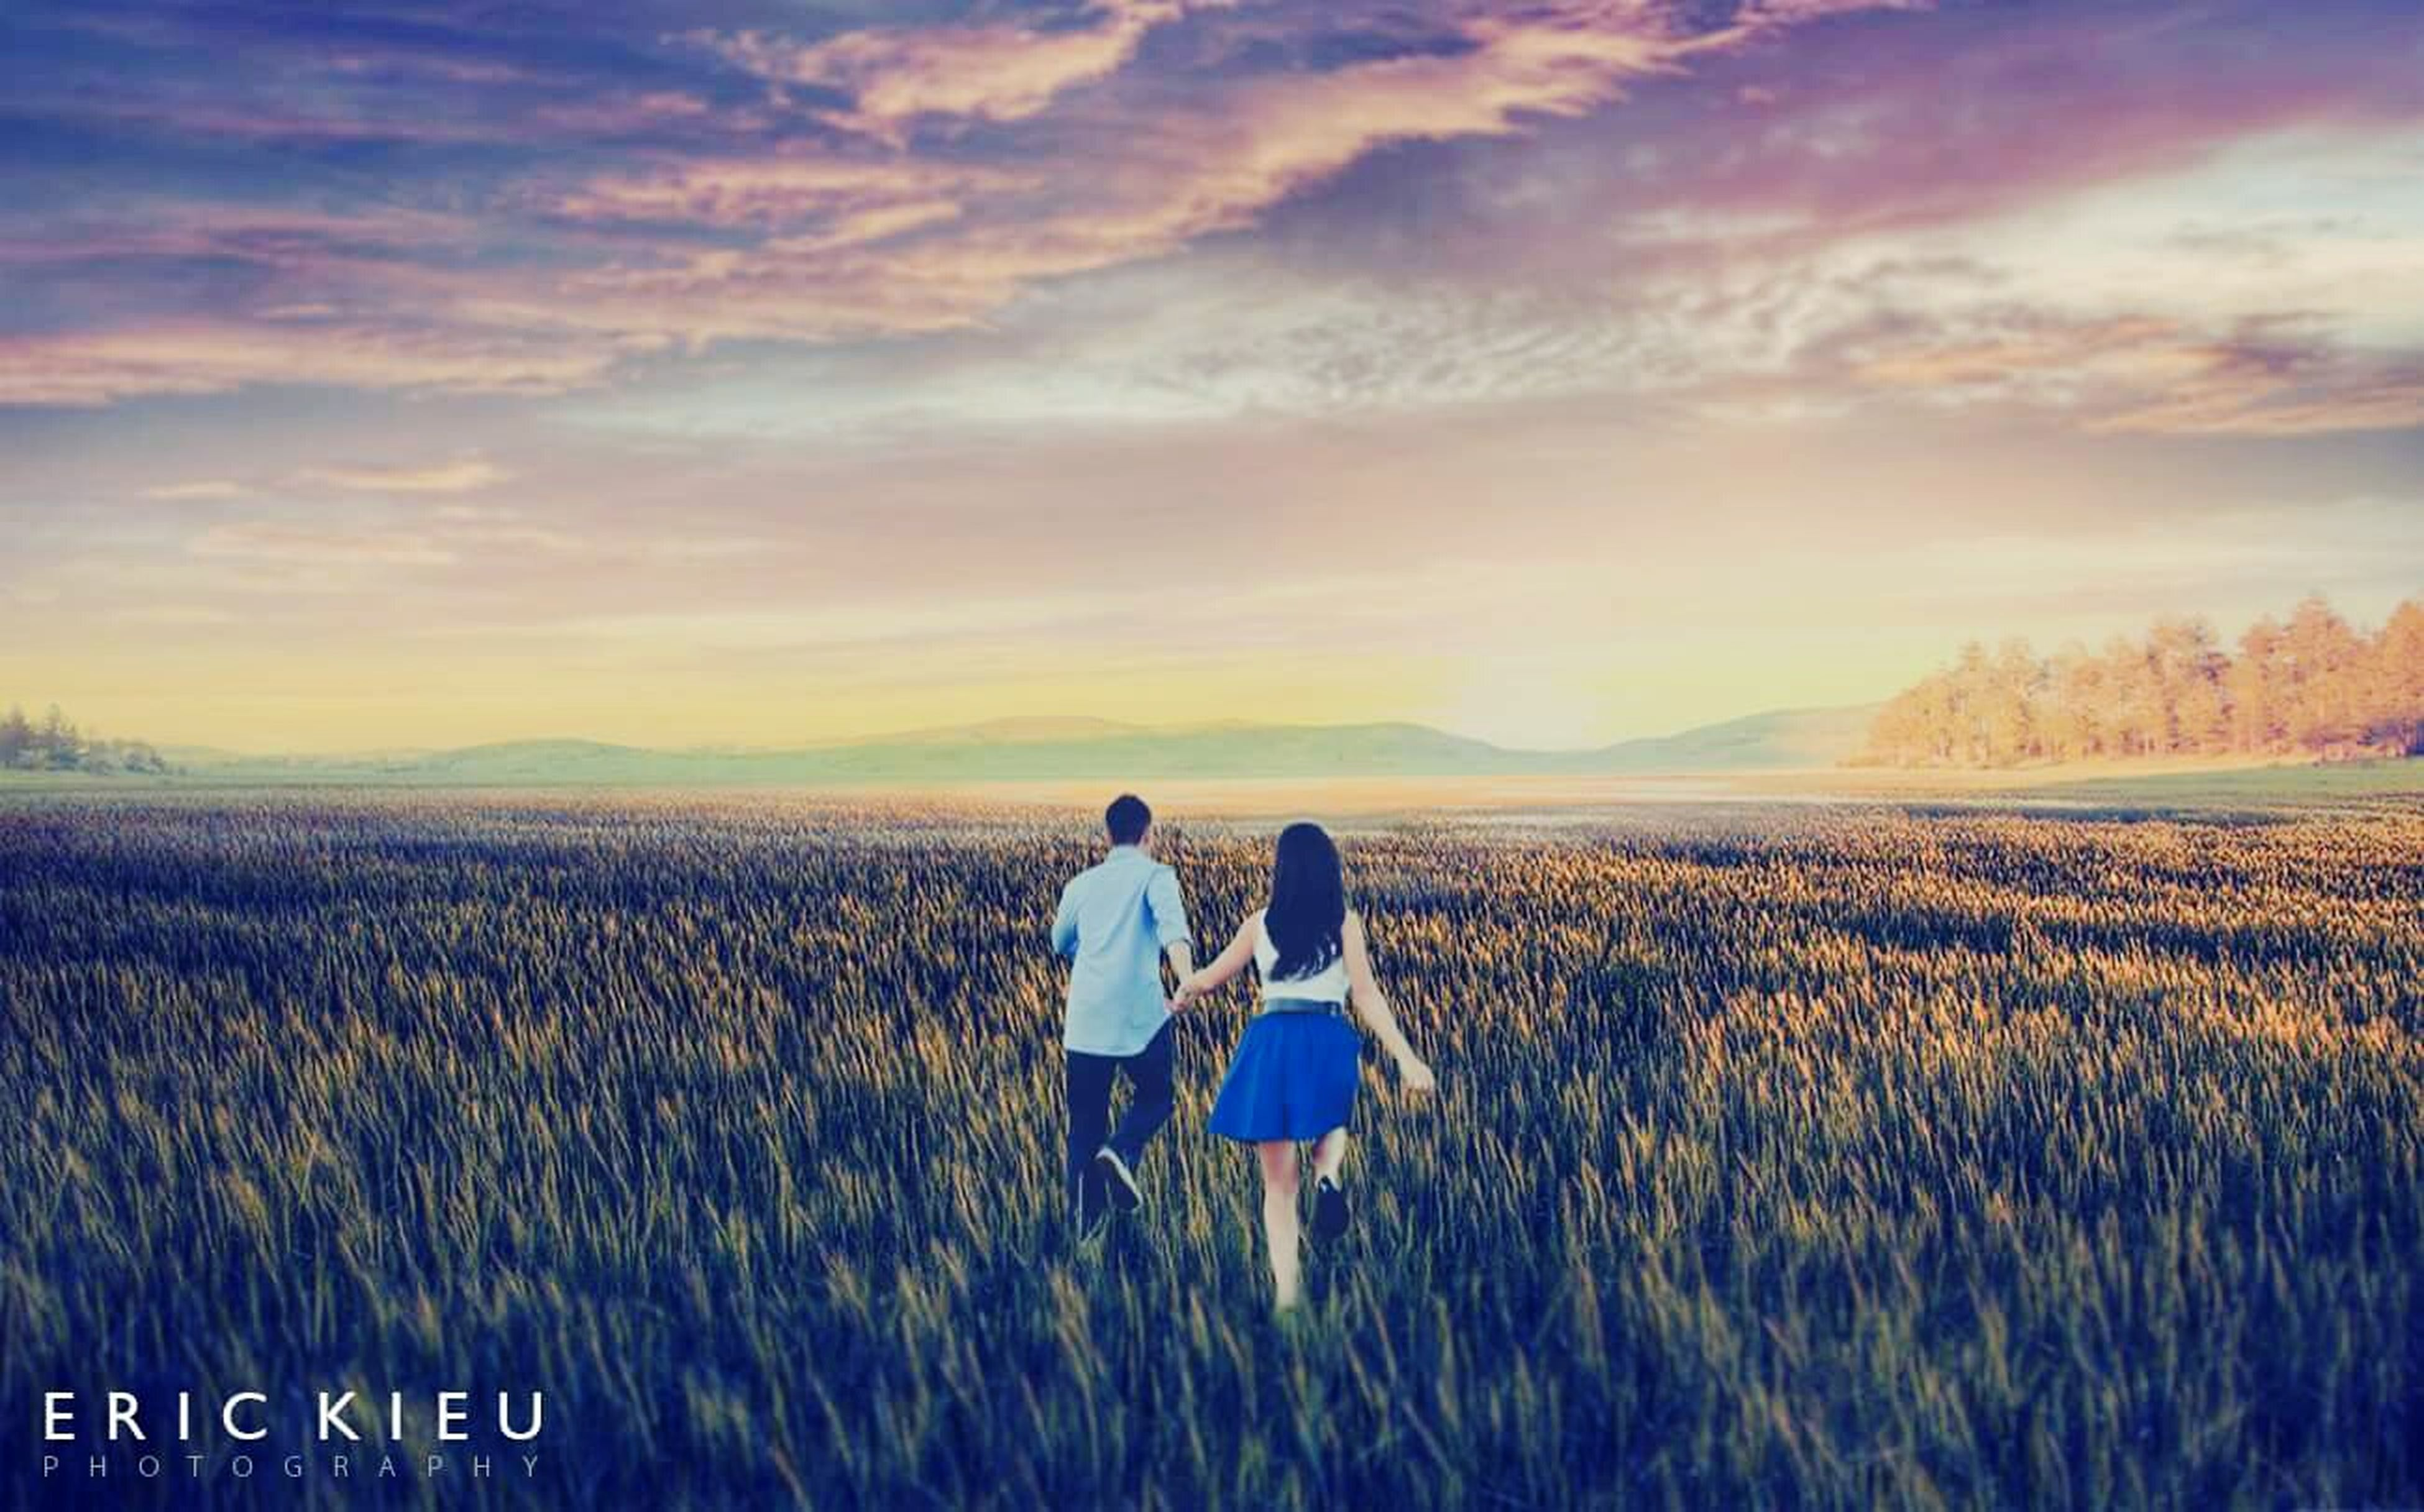 field, lifestyles, landscape, leisure activity, sky, sunset, rear view, tranquil scene, rural scene, scenics, tranquility, nature, beauty in nature, agriculture, standing, cloud - sky, men, person